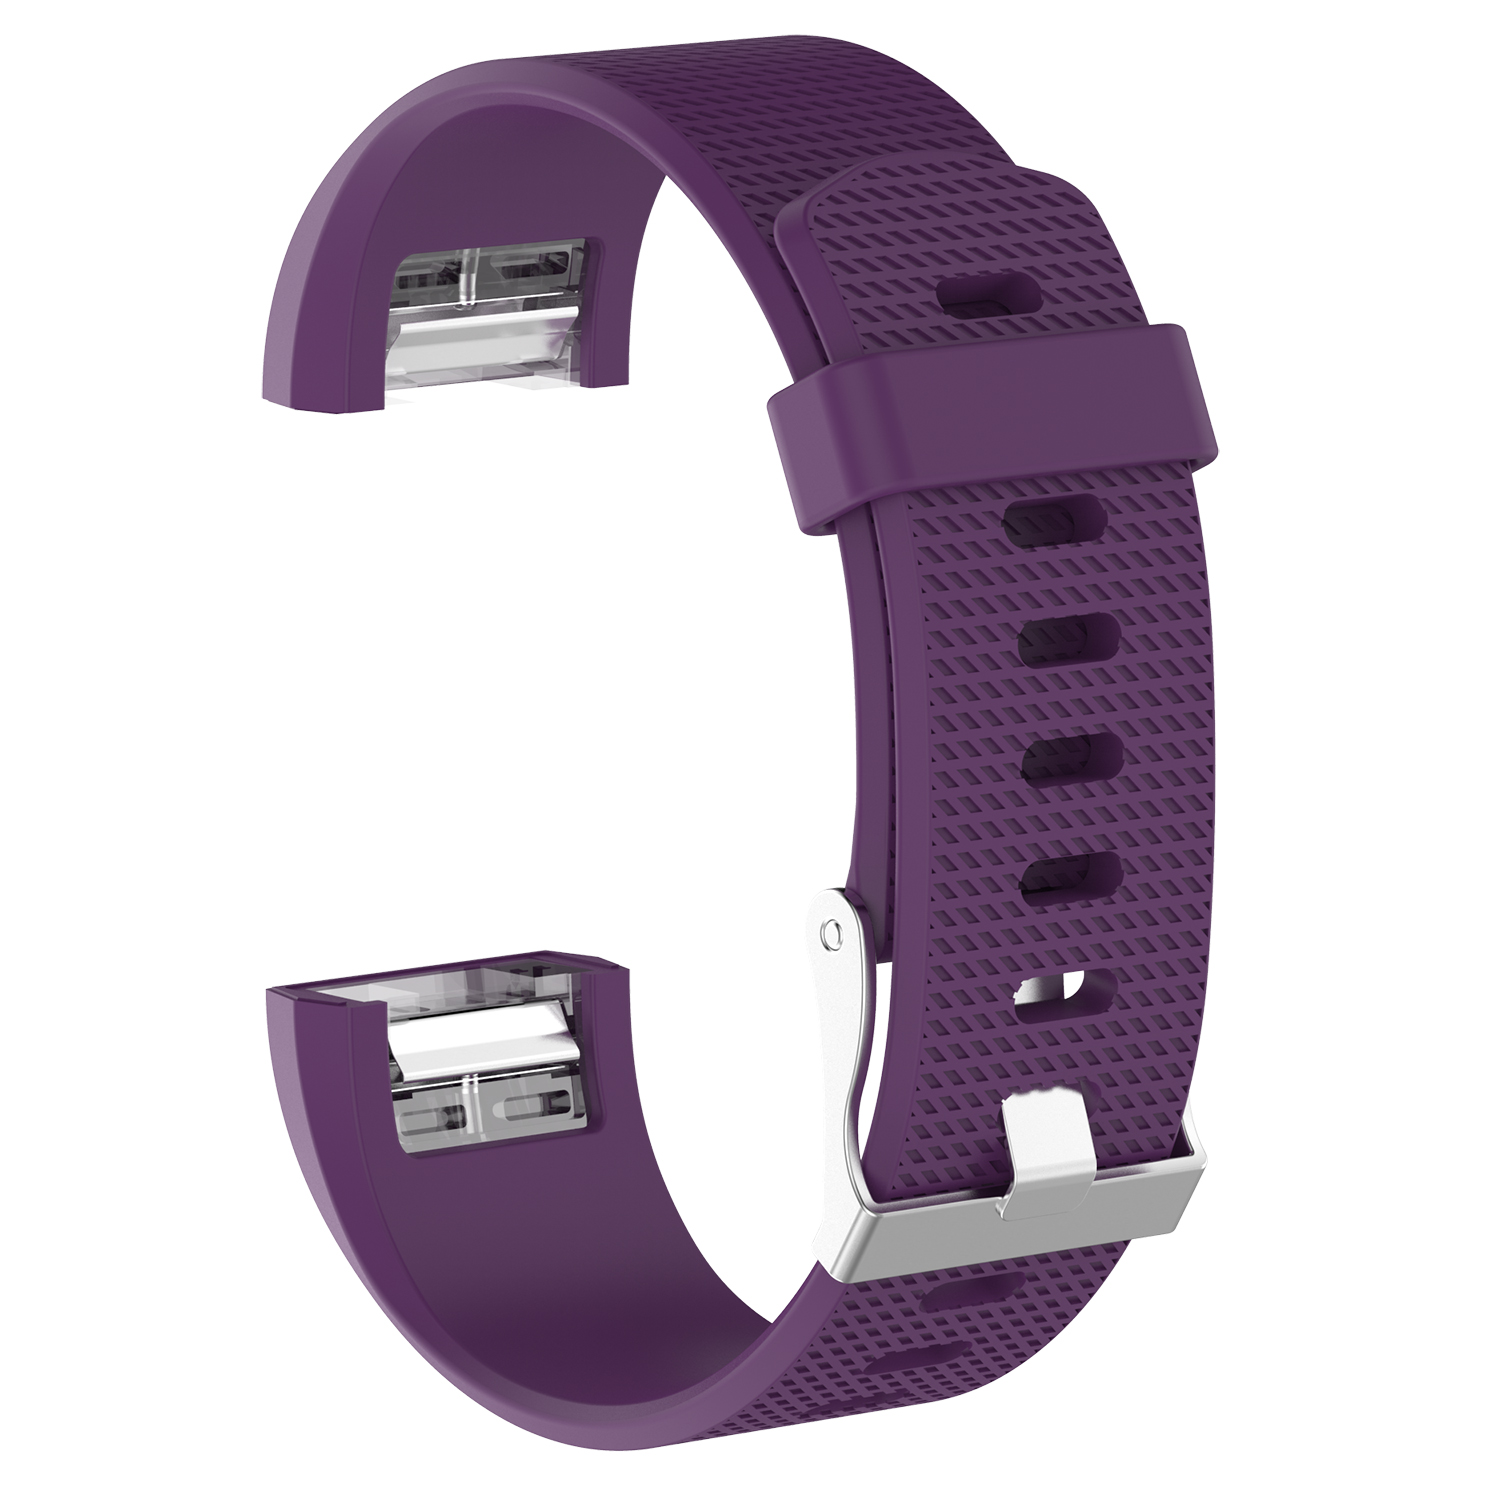 Replacement-Silicone-Wristband-Watch-Strap-Bands-Bracelet-For-Fitbit-Charge-2 thumbnail 36